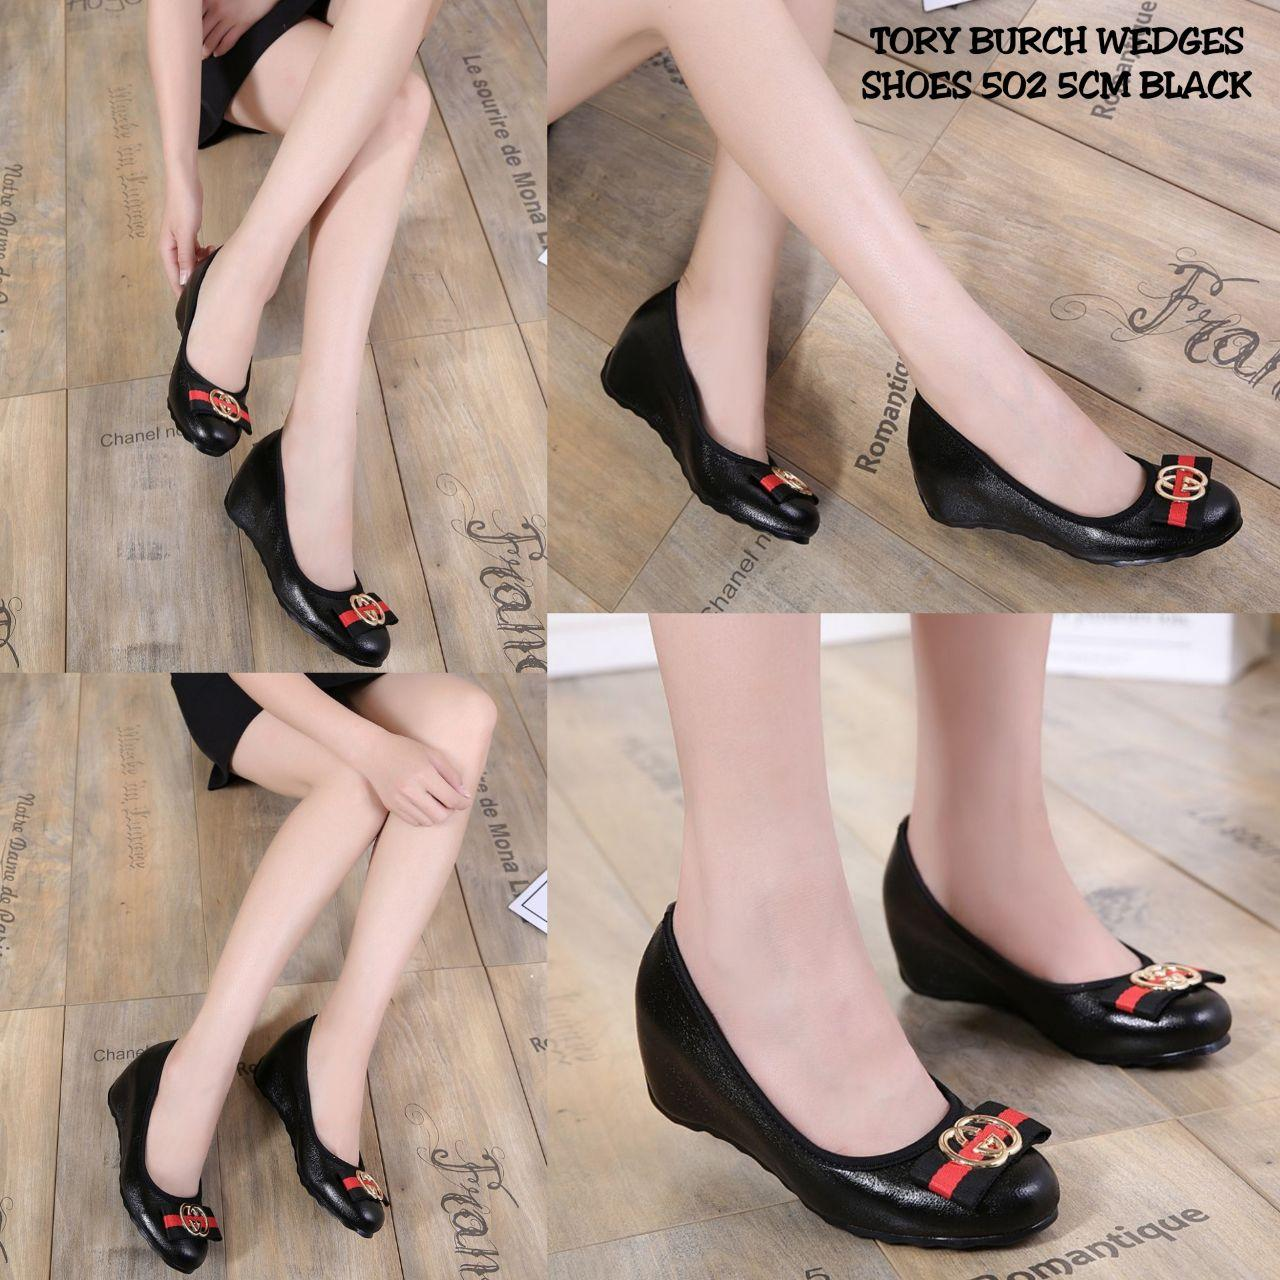 TORY BURCH WEDGES SHOES 502